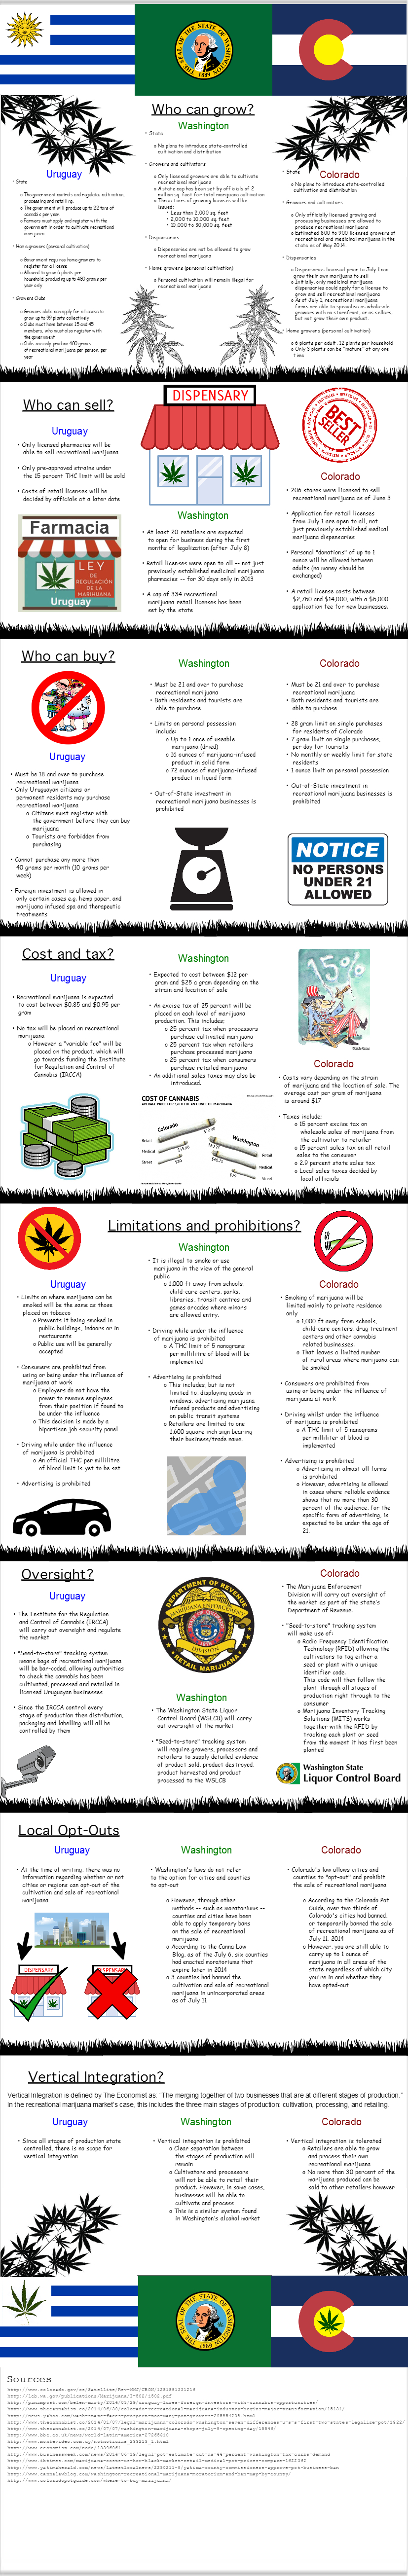 Image Result For Can Marijuana Harm